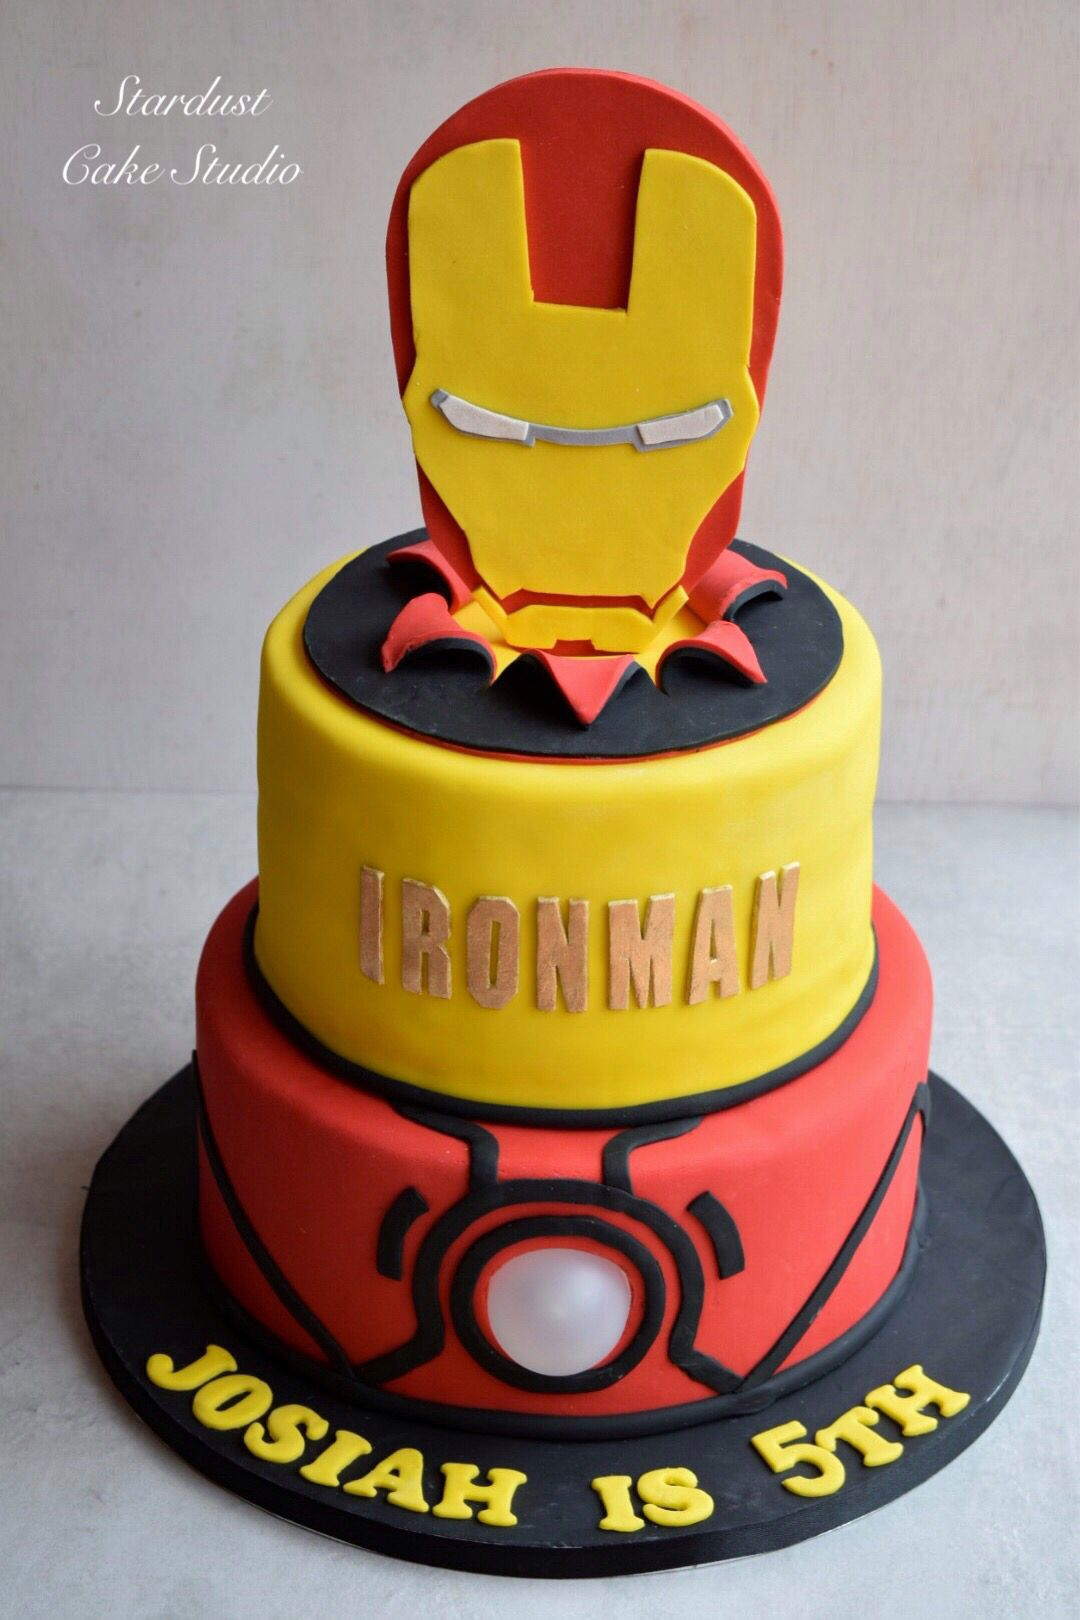 Pleasing Ironman Cake With Images Iron Man Birthday Ironman Cake Iron Birthday Cards Printable Trancafe Filternl